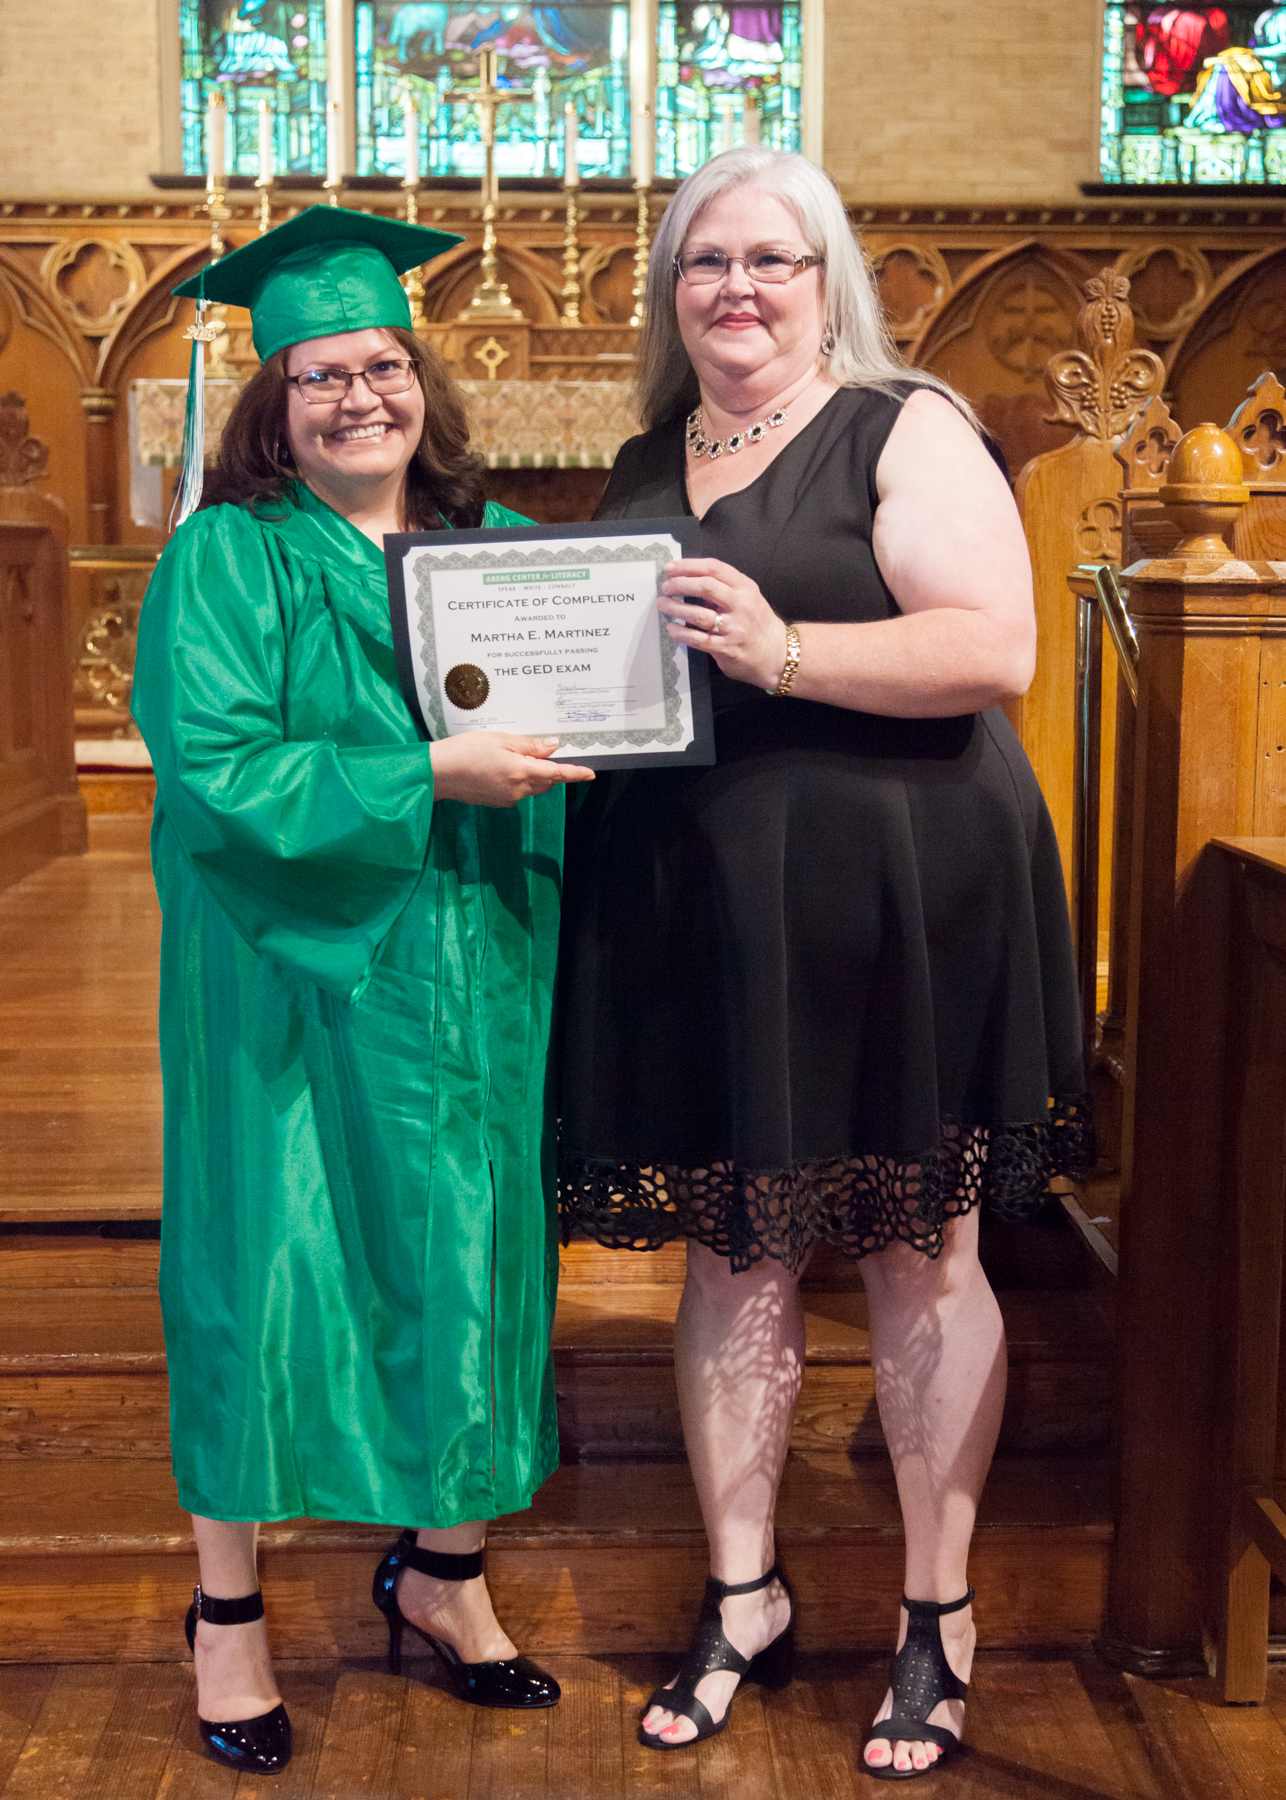 10-Aberg Center for Literacy - June 2019 Graduation.jpg